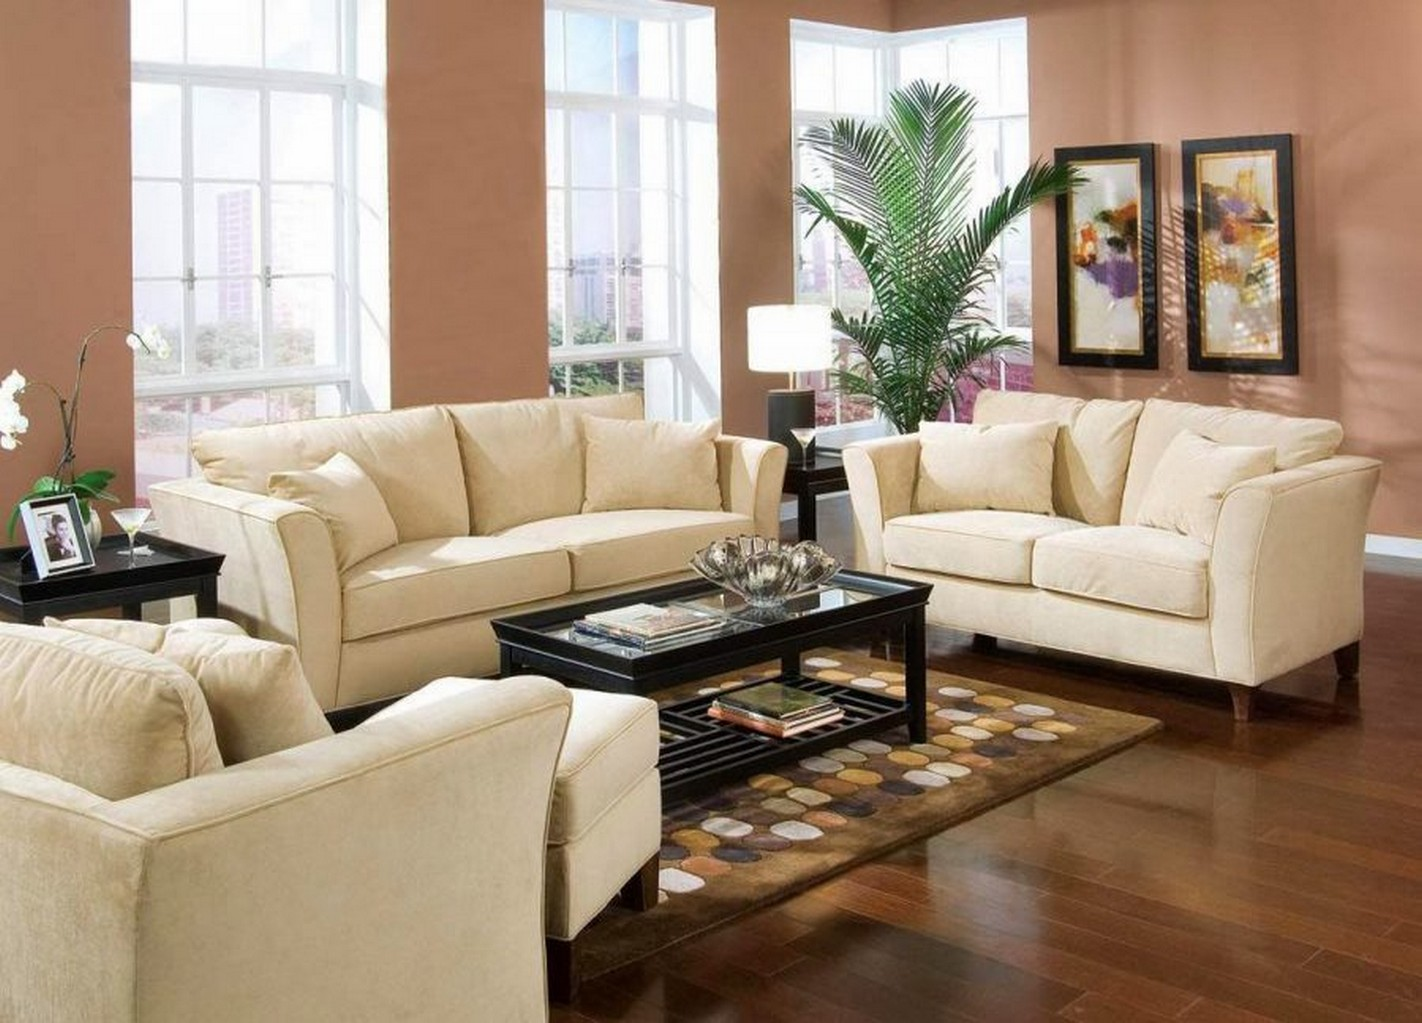 Small living room furniture ideas felish home project for Living room ideas with 3 sofas